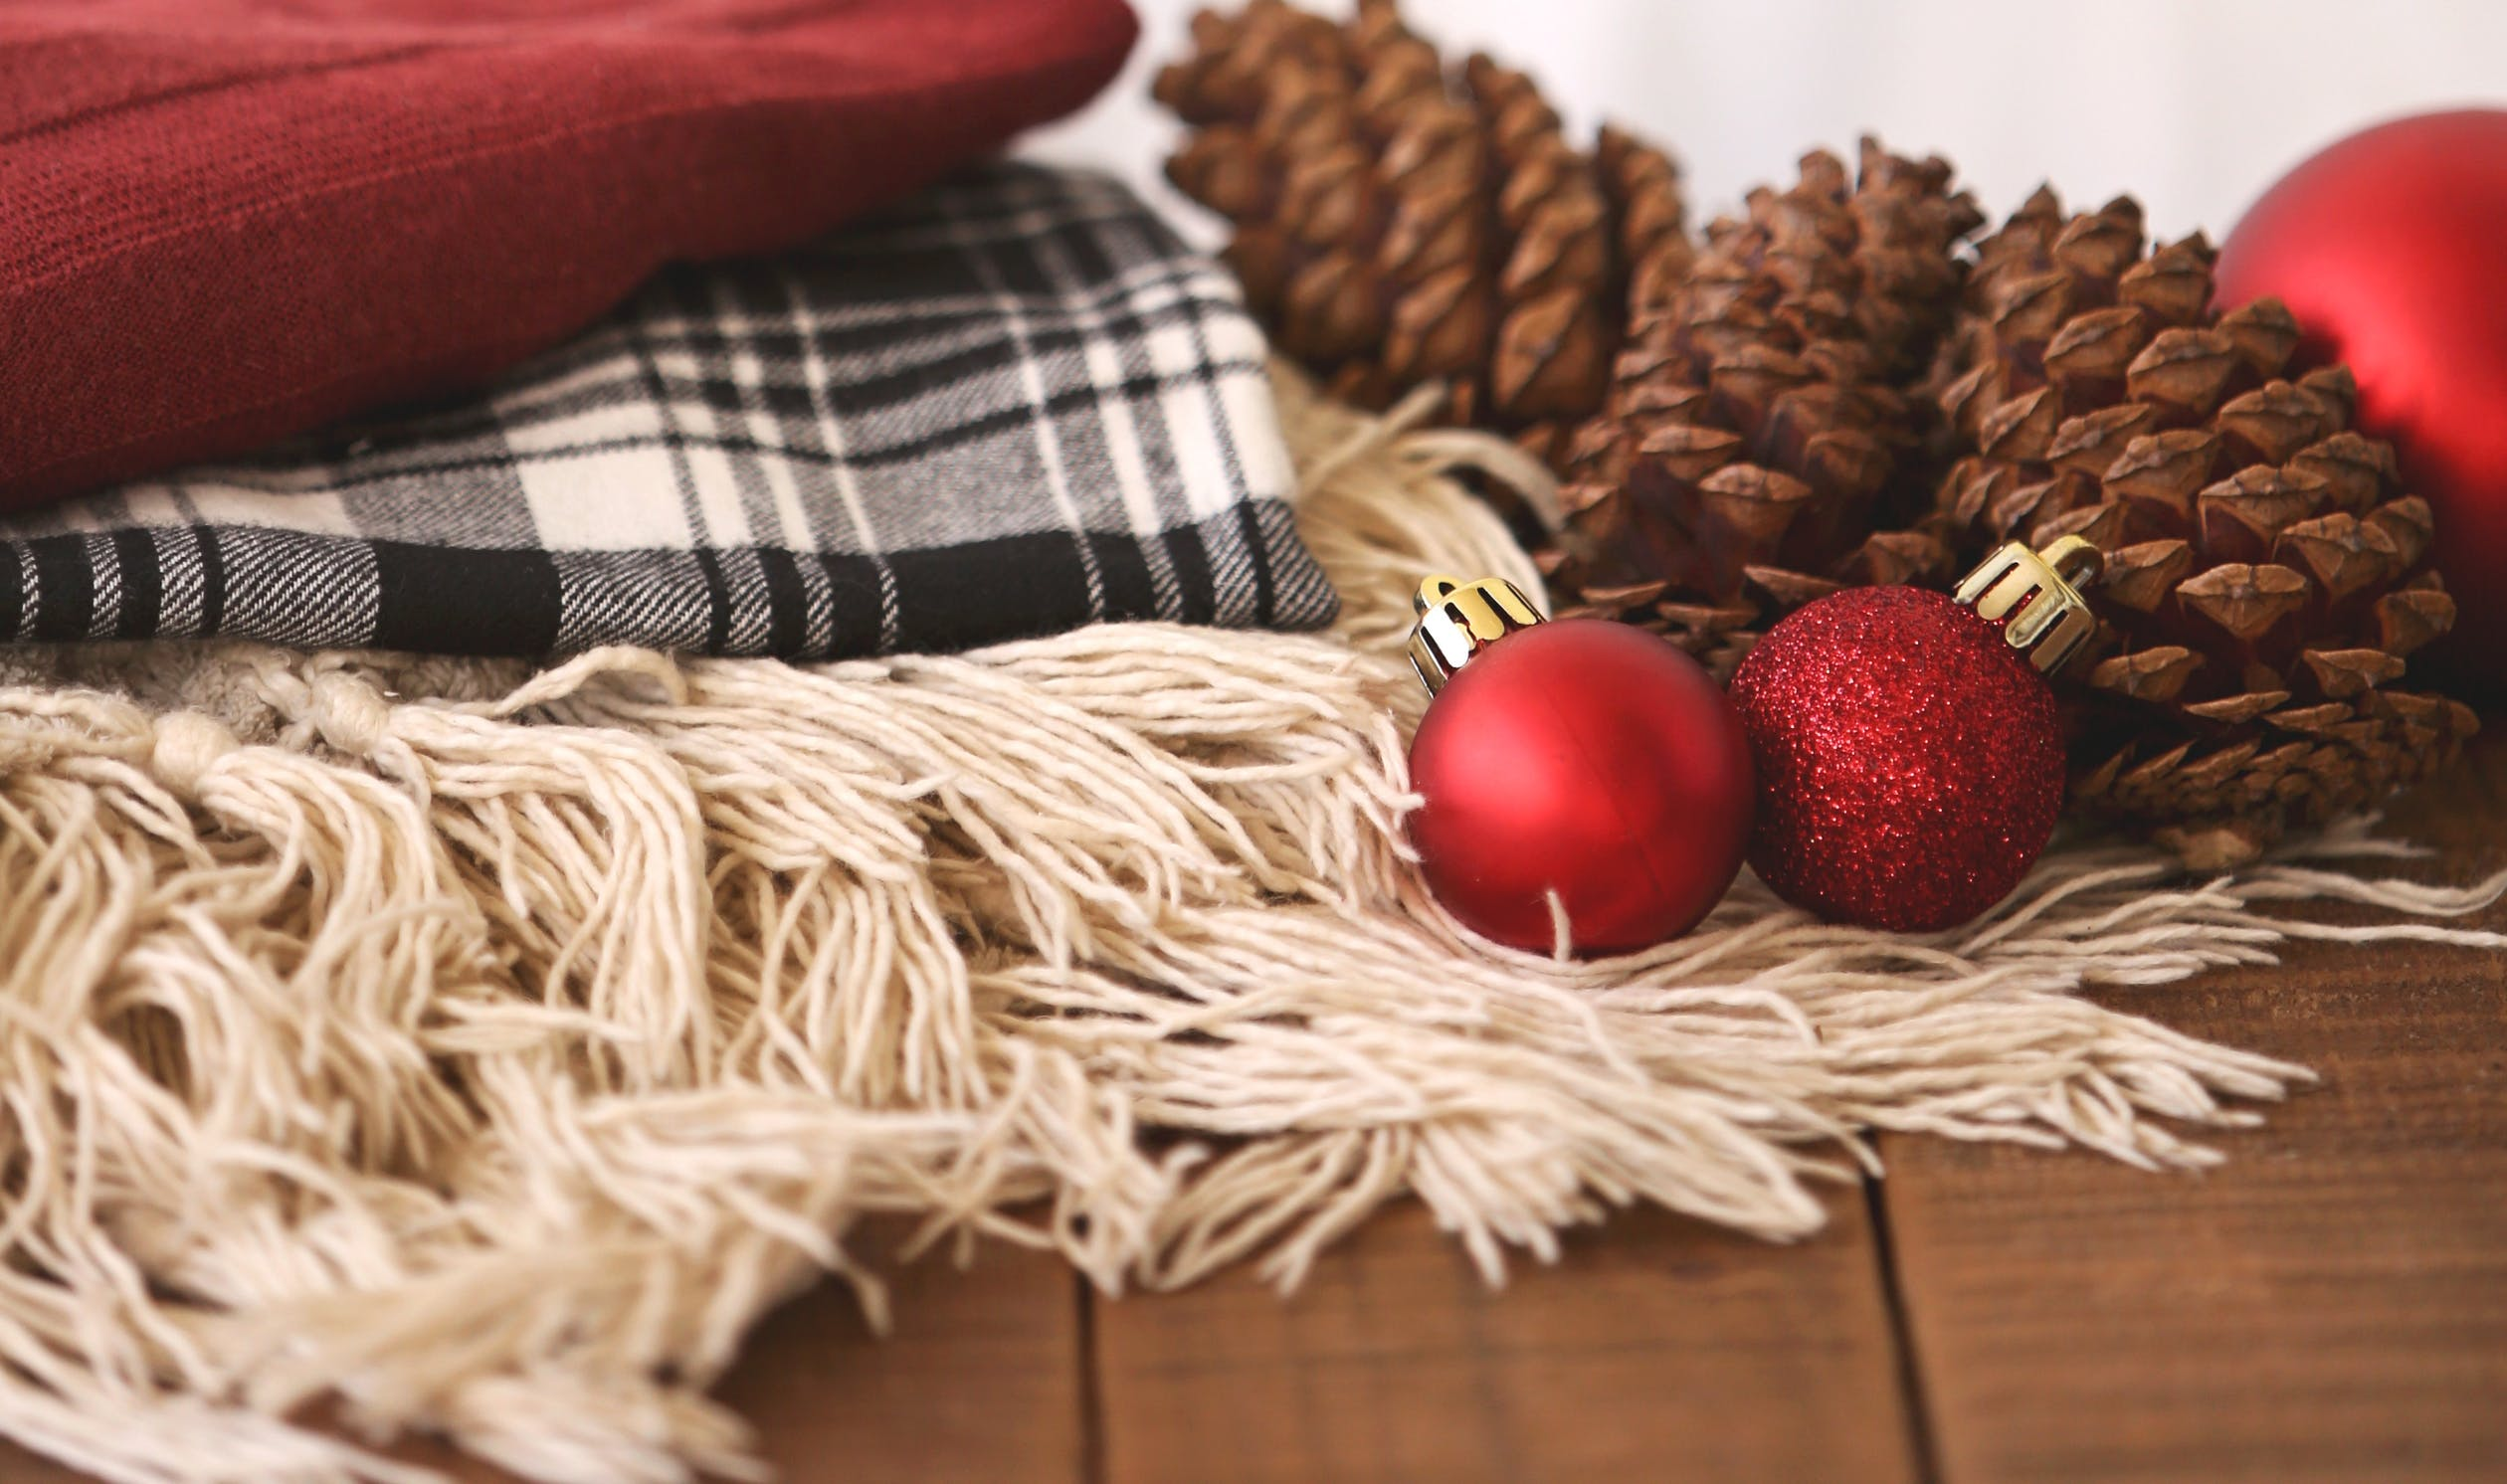 holiday decor and blankets